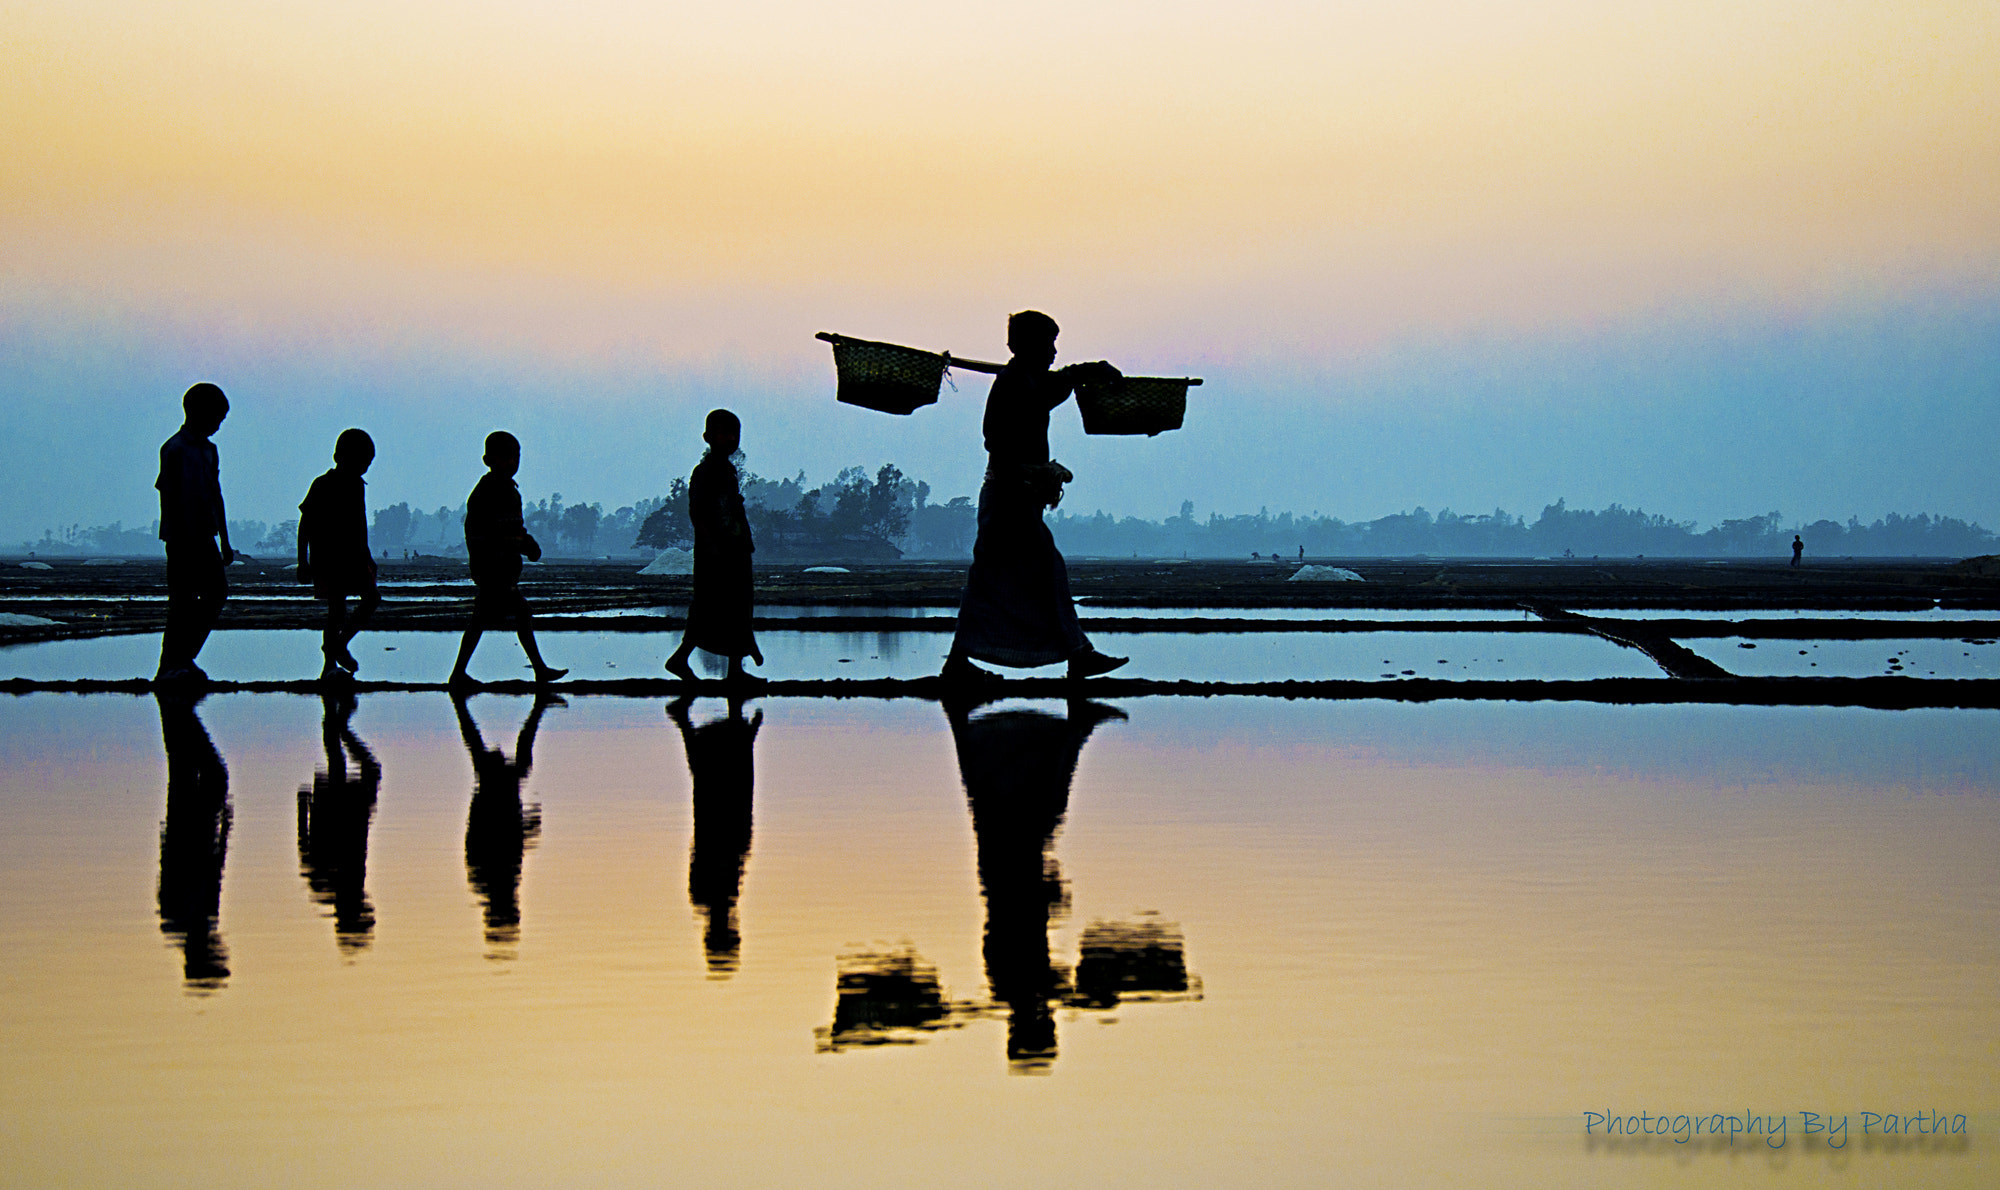 Photograph Reflection of life by Partha Basak on 500px